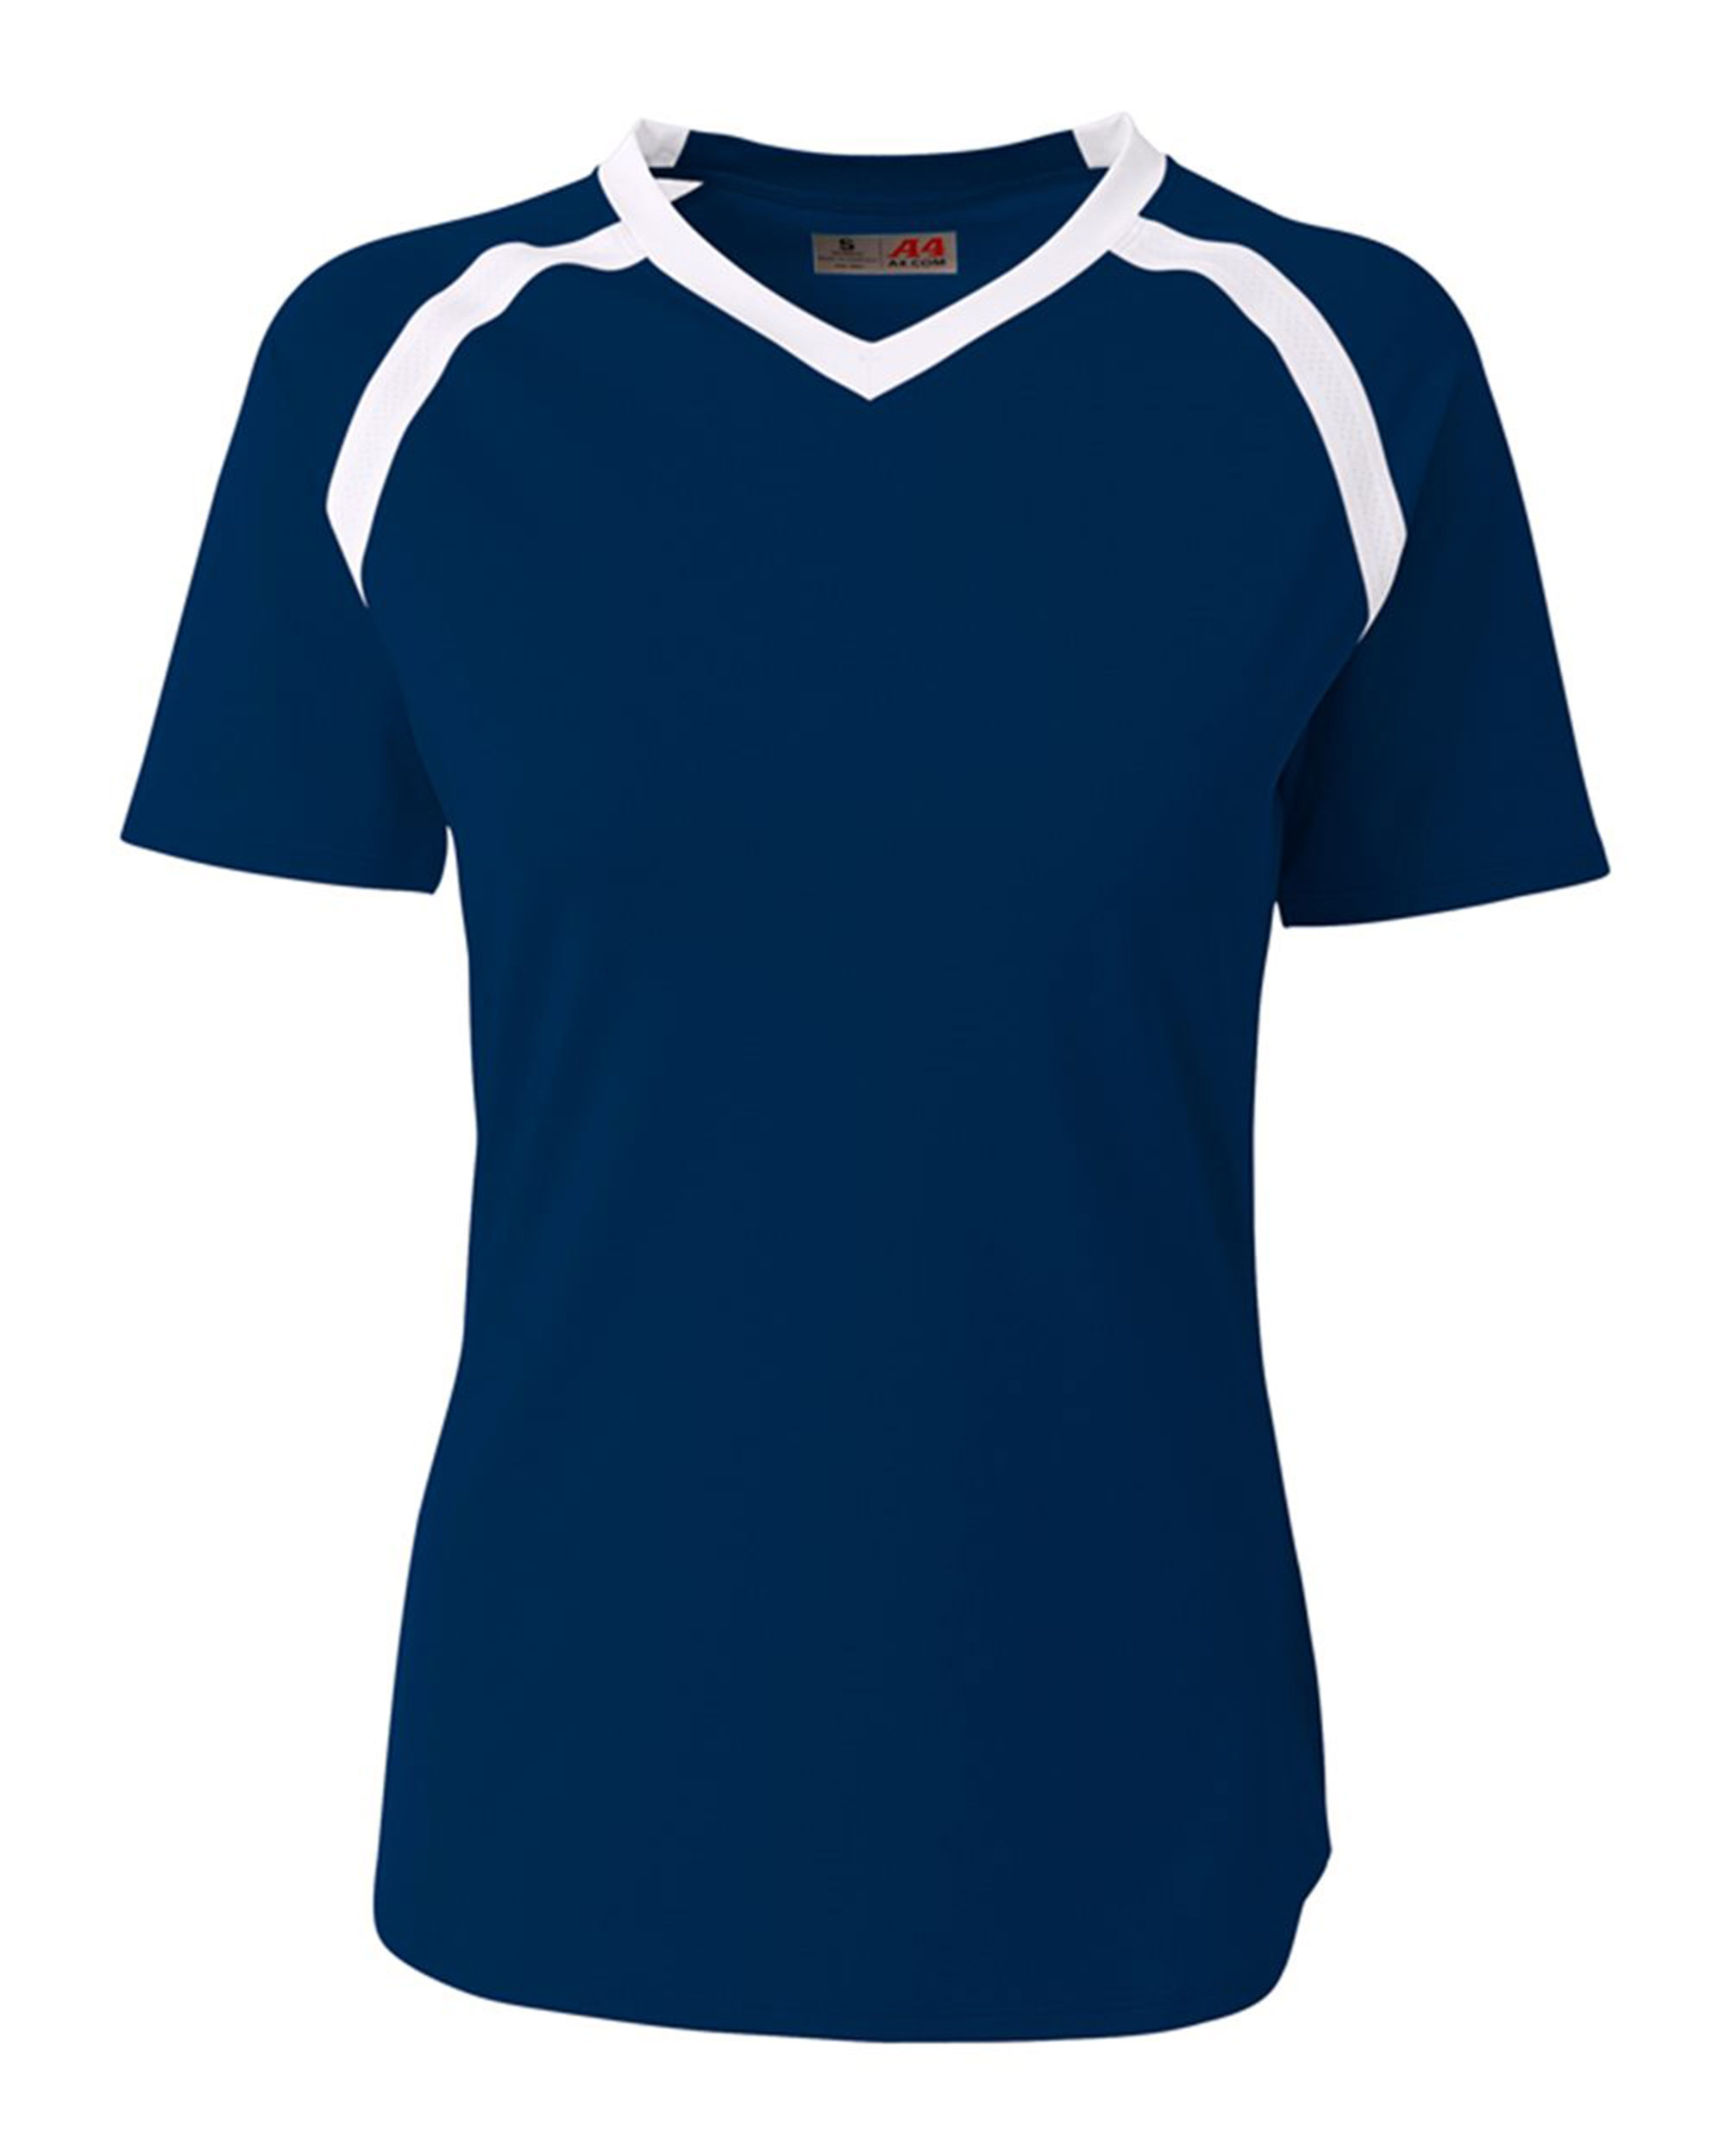 Youth The Ace Short Sleeve Volleyball Jersey